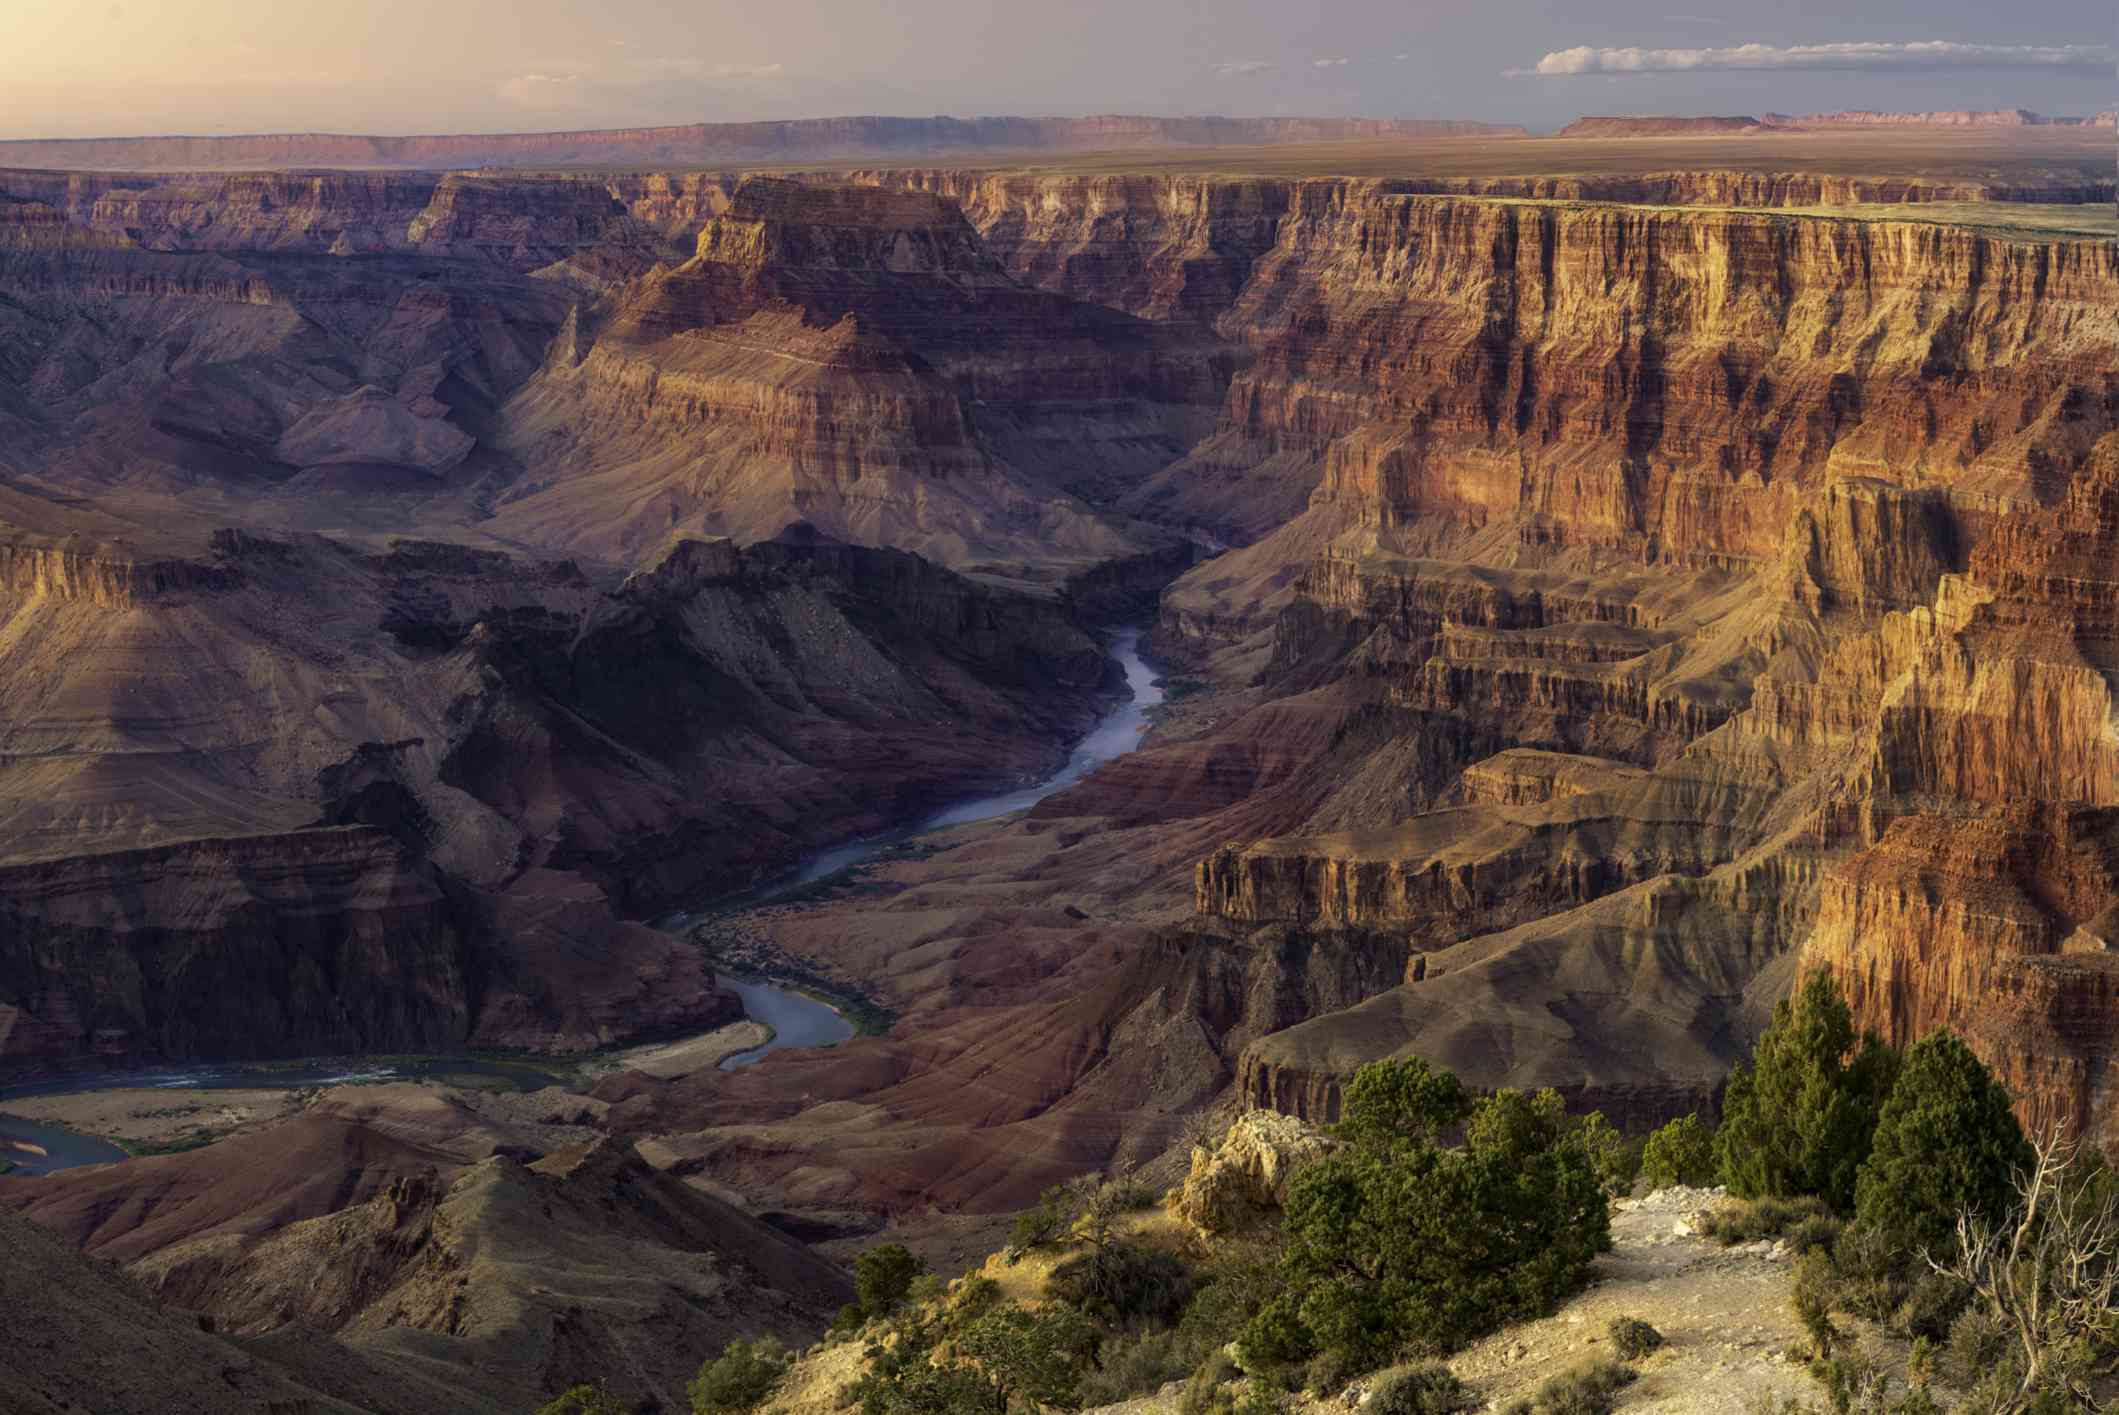 View of Colorado River in Grand Canyon National Park